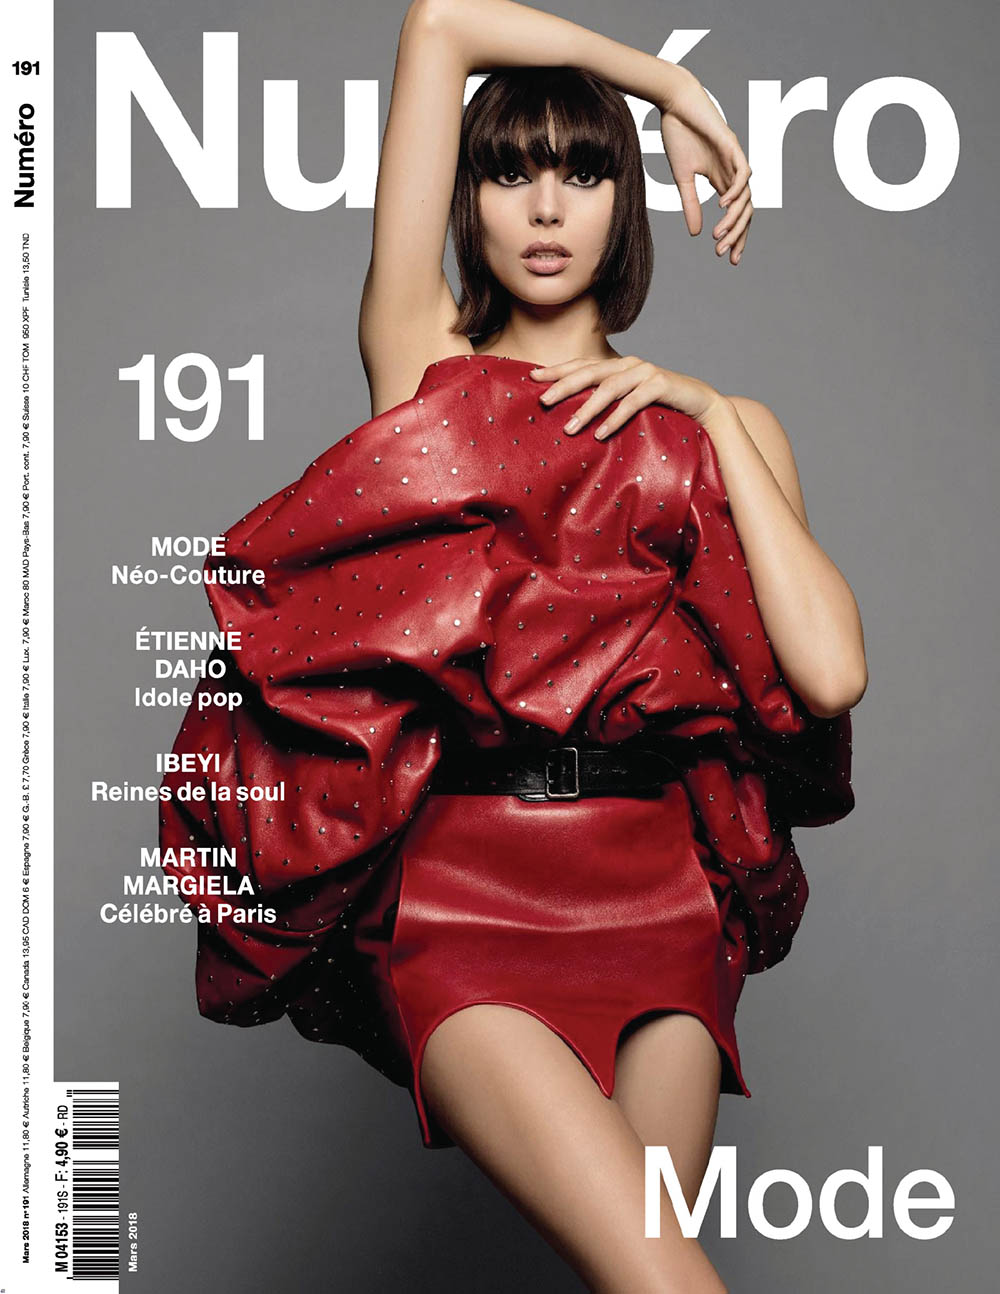 Charlee Fraser covers Numéro March 2018 by Jean-Baptiste Mondino